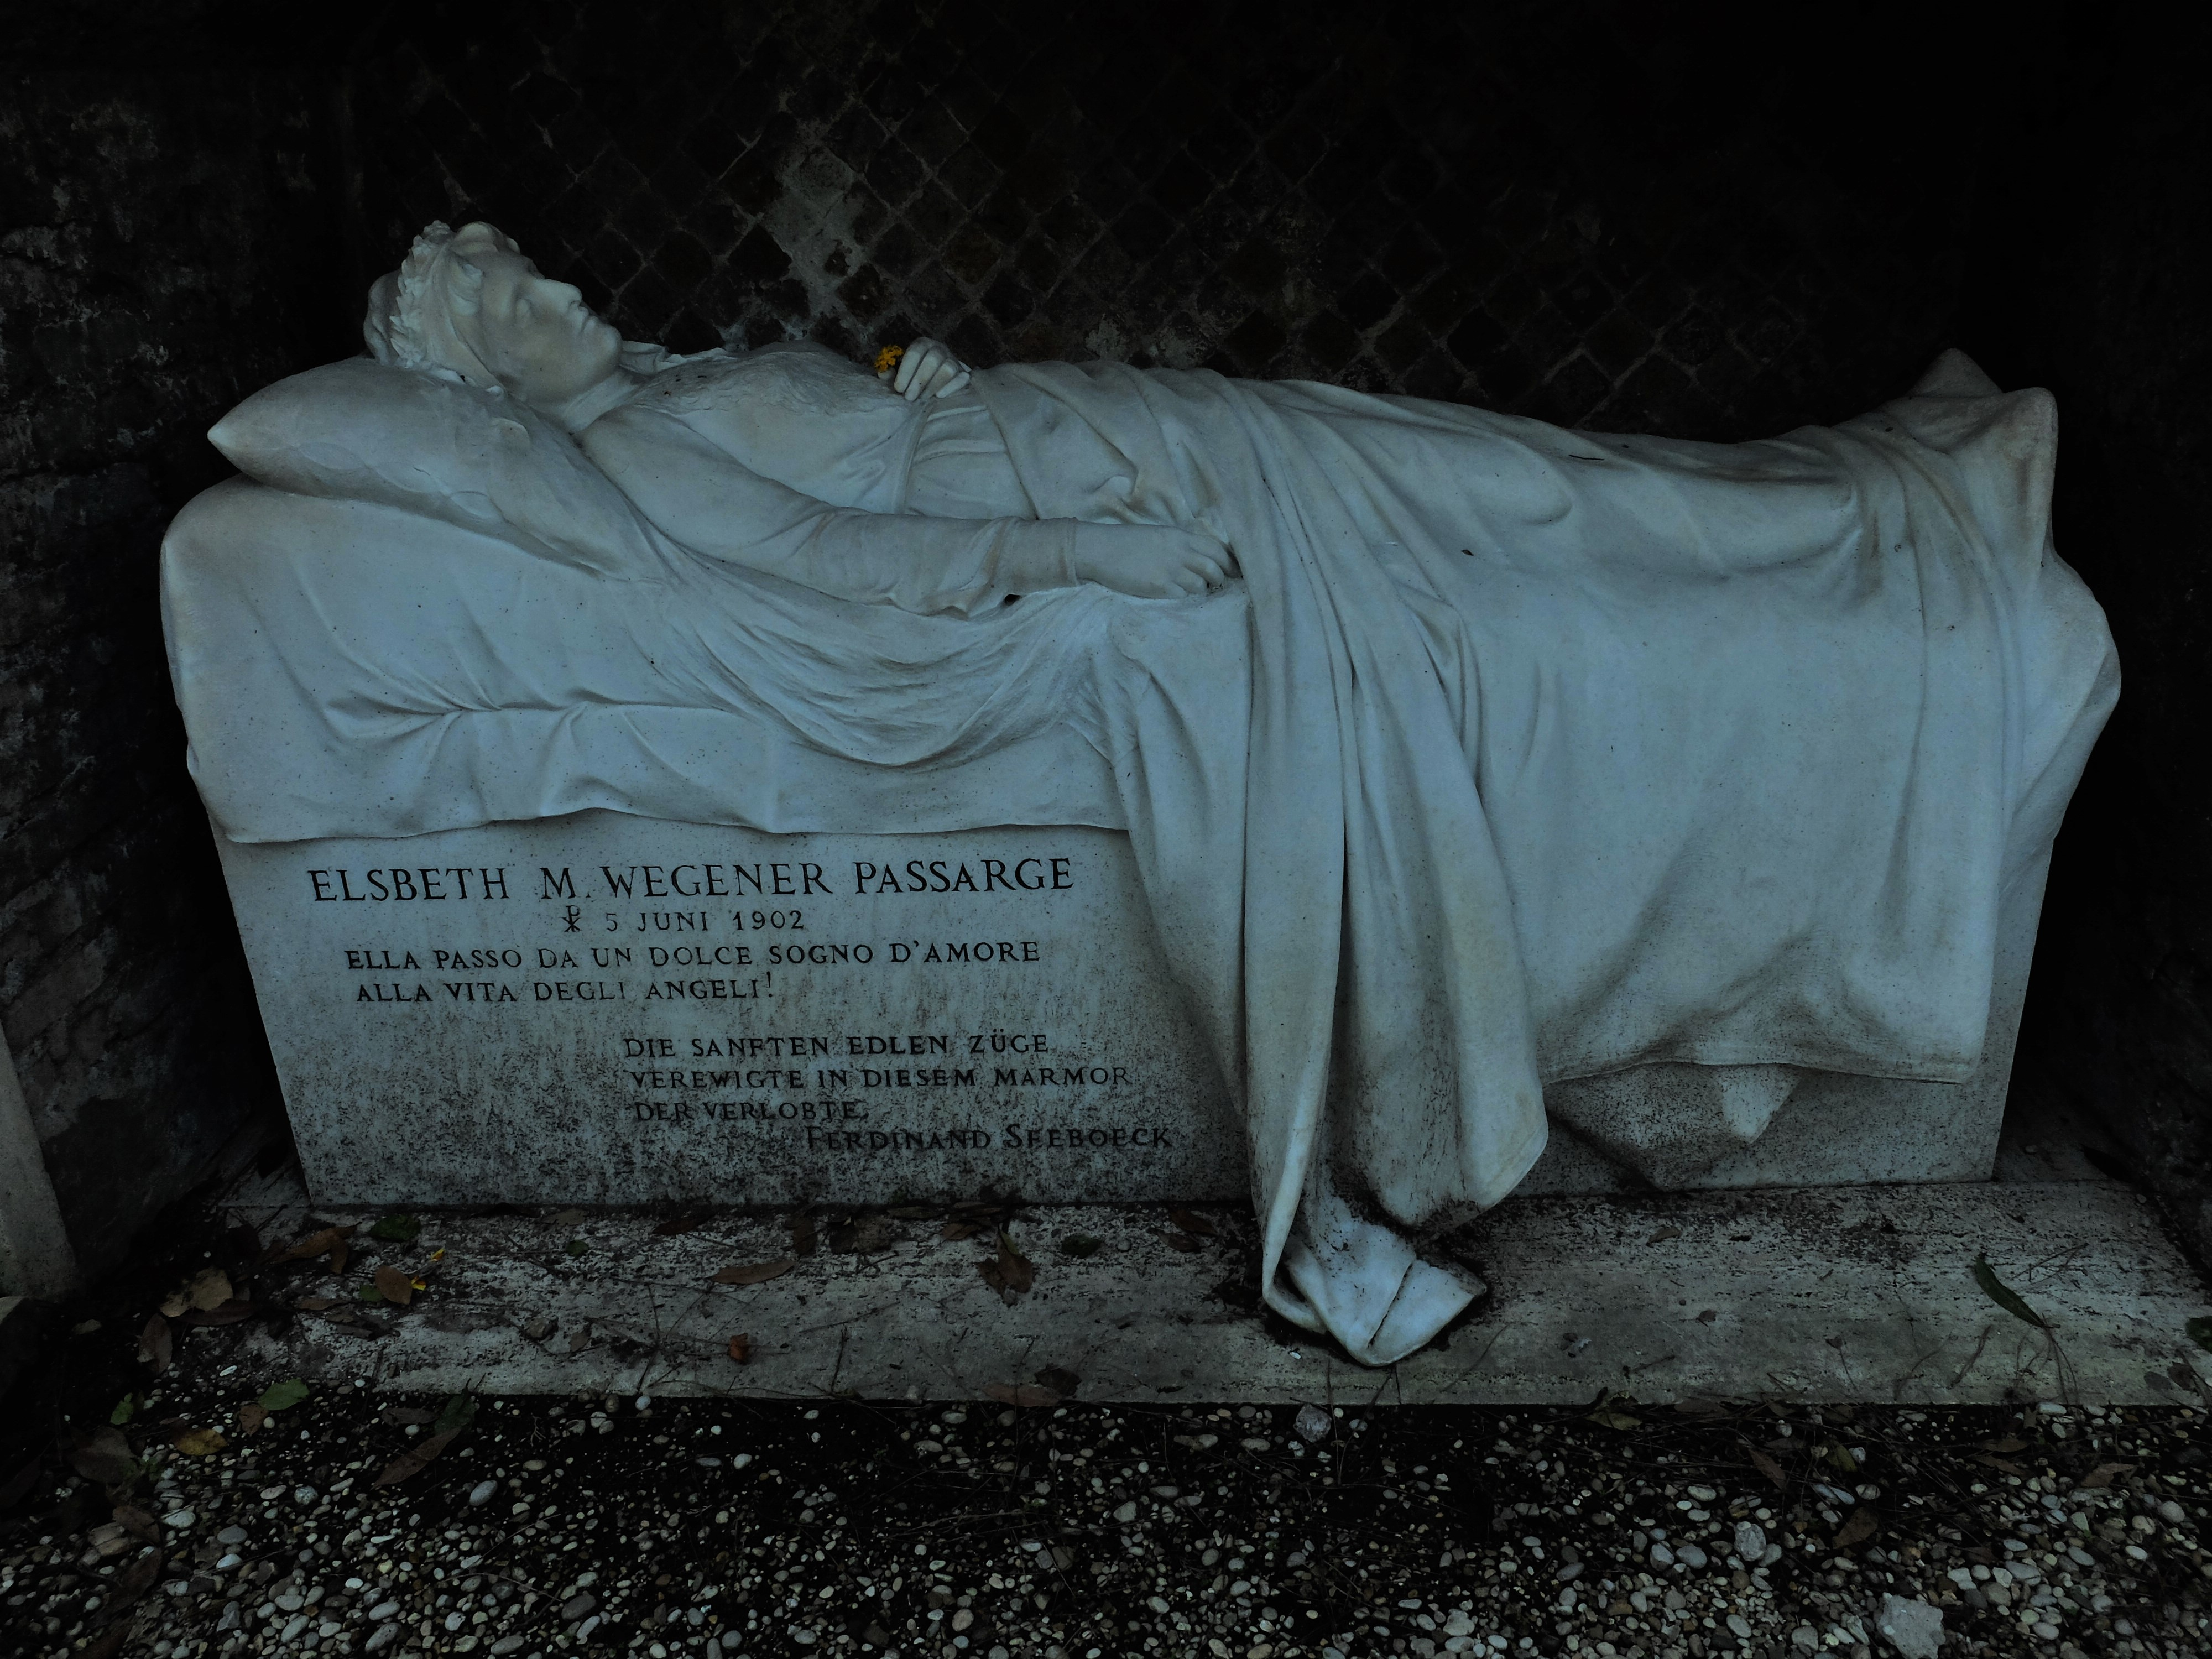 If you love gothic vibes, monochrome statues, spooky cypress trees and hissing cats then Rome's Non-Catholic Cememtery is the place for you. Read on for 9 atmospheric things to look out for, including Keats' grave and a colony of cats...